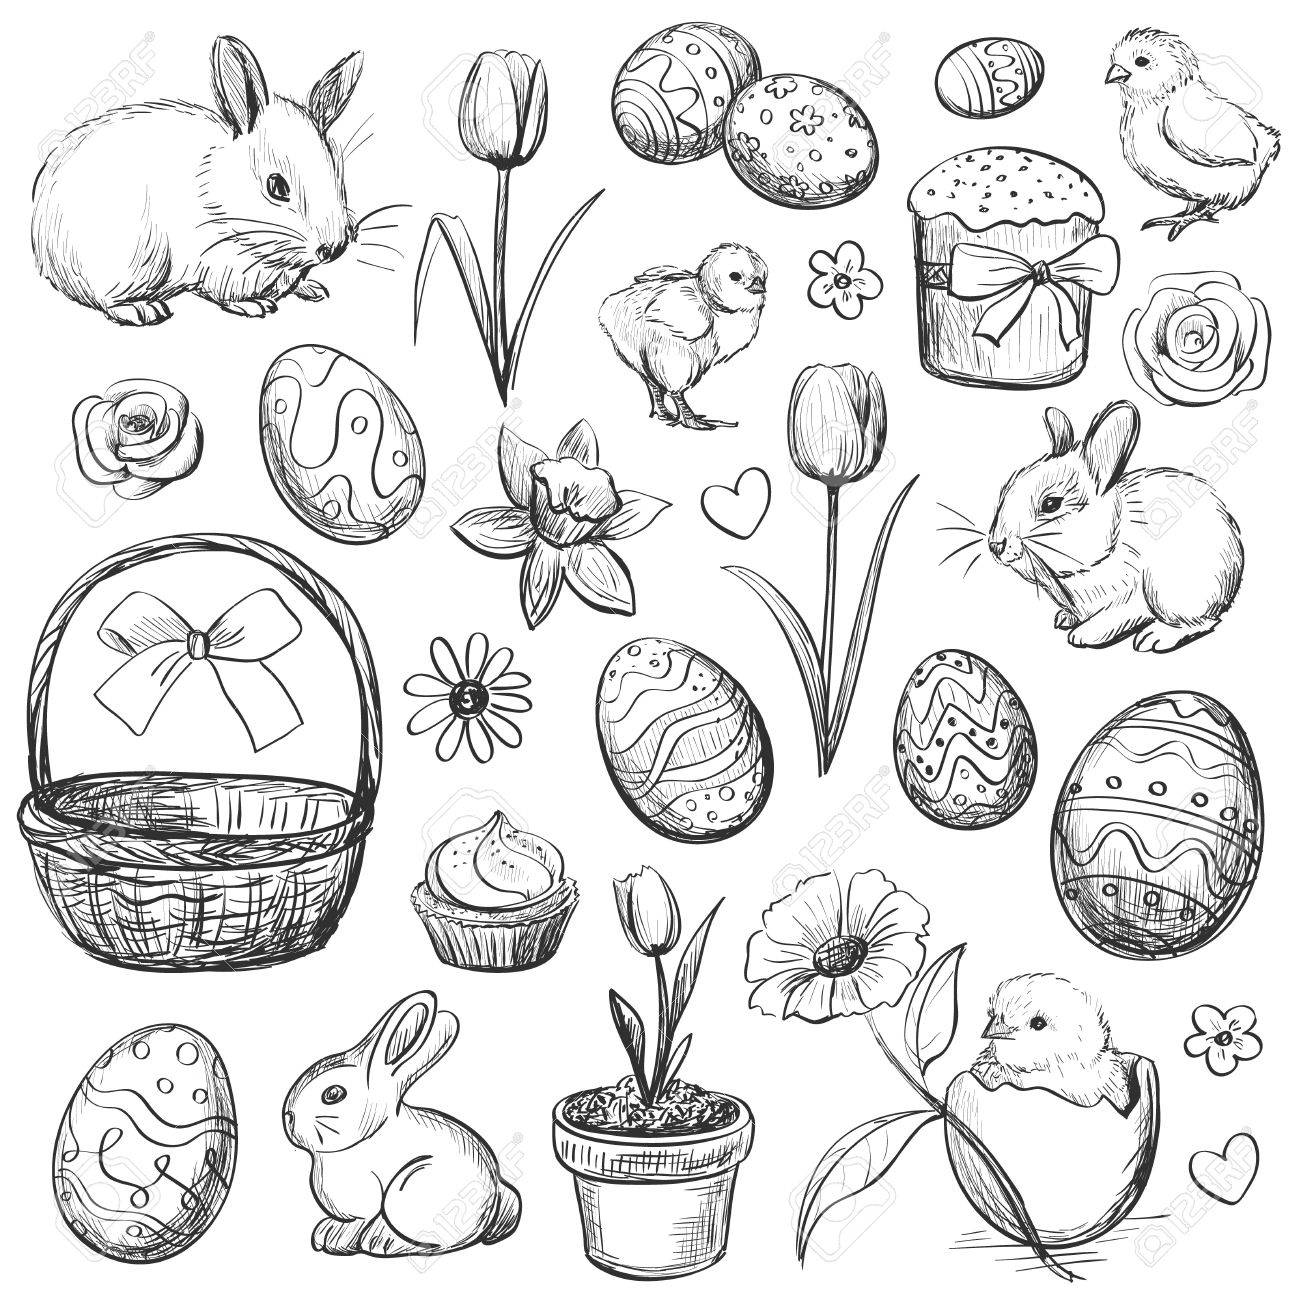 Sketches on the theme of easter traditional symbols and decorative elements isolated pictures on